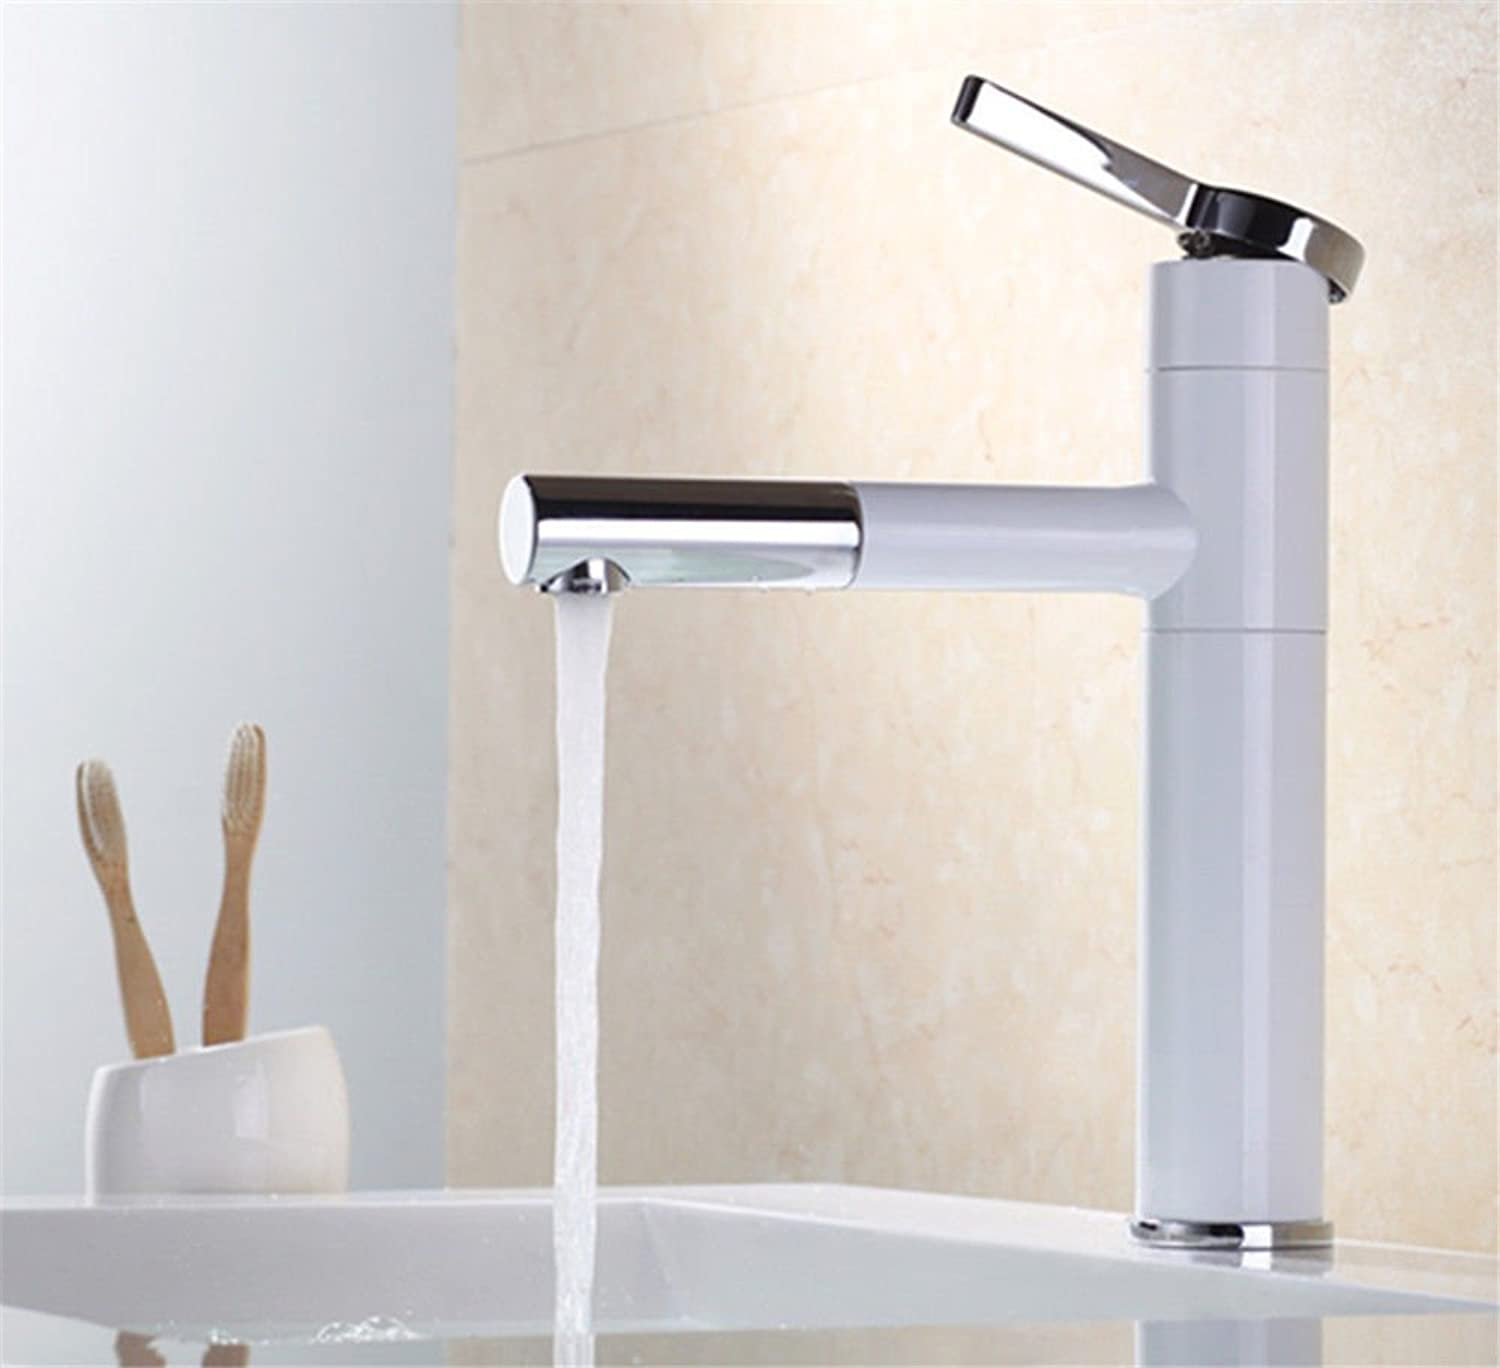 AQMMi Basin Sink Mixer Tap for Lavatory White Stoving Lacquer Single Lever redatable Hot and Cold Water Brass Pull-Out Single Lever Bathroom Vanity Sink Faucet